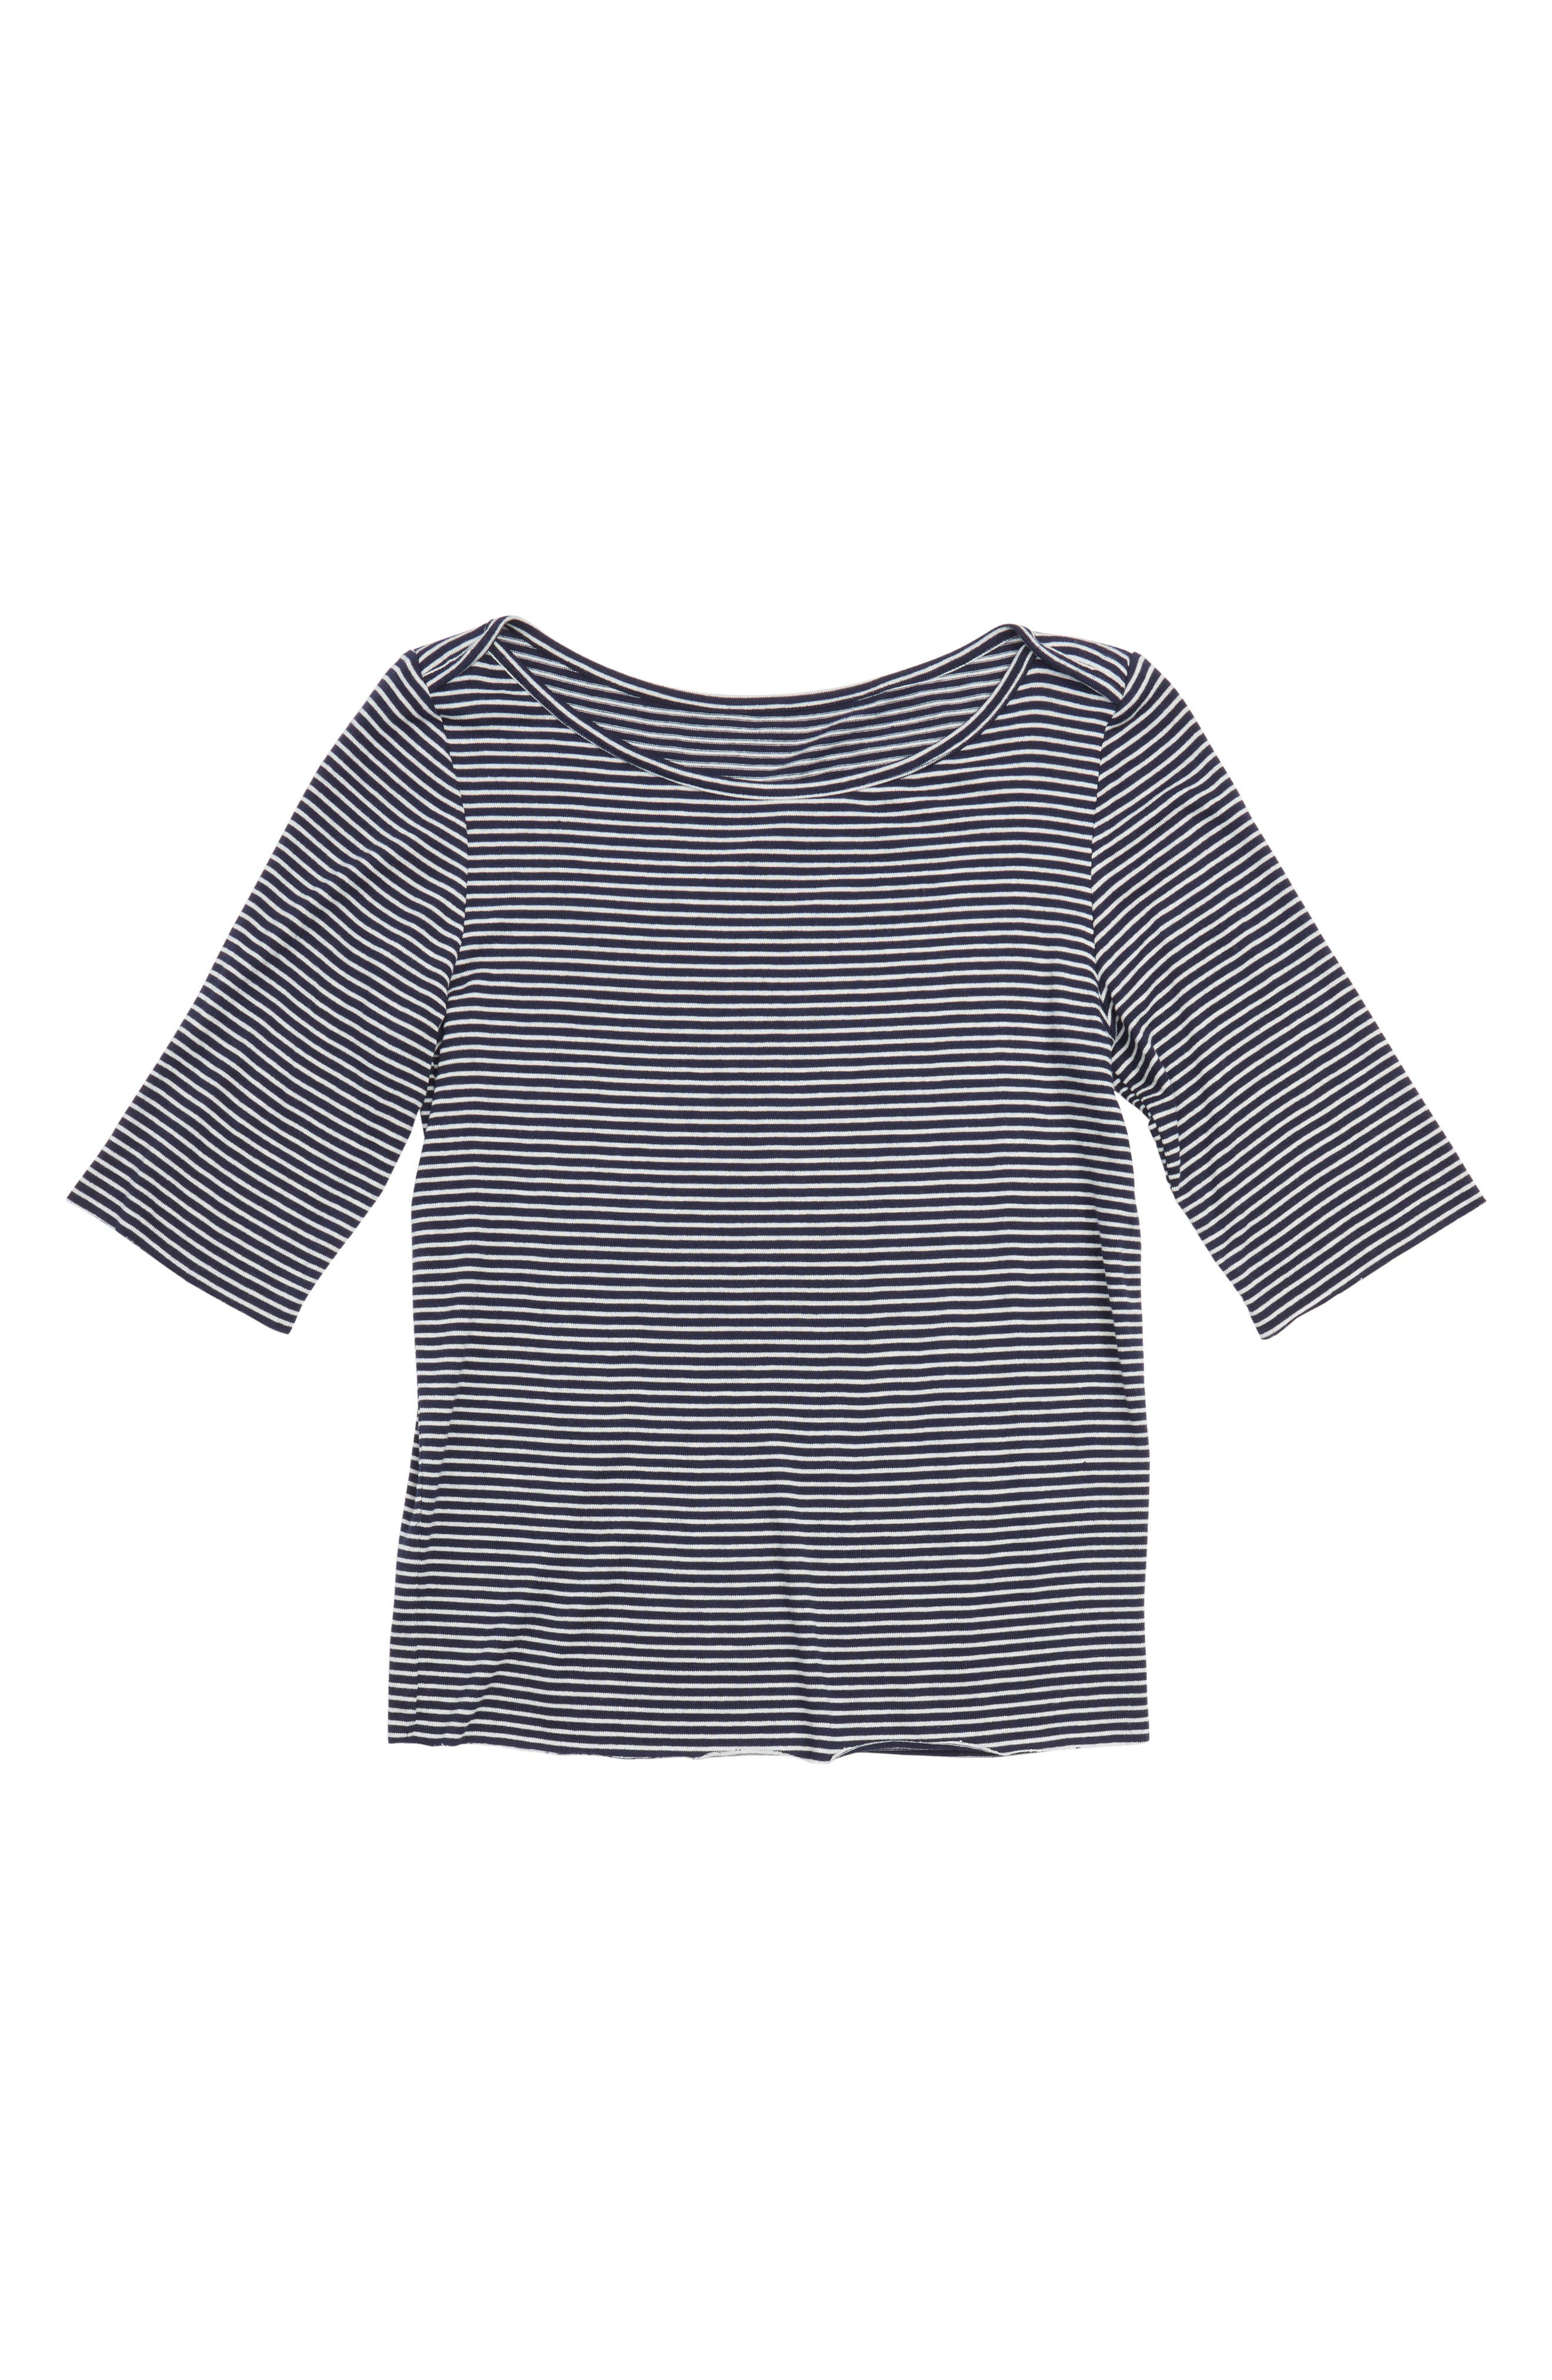 Main Image - Treasure & Bond Stripe Tee (Big Girls)